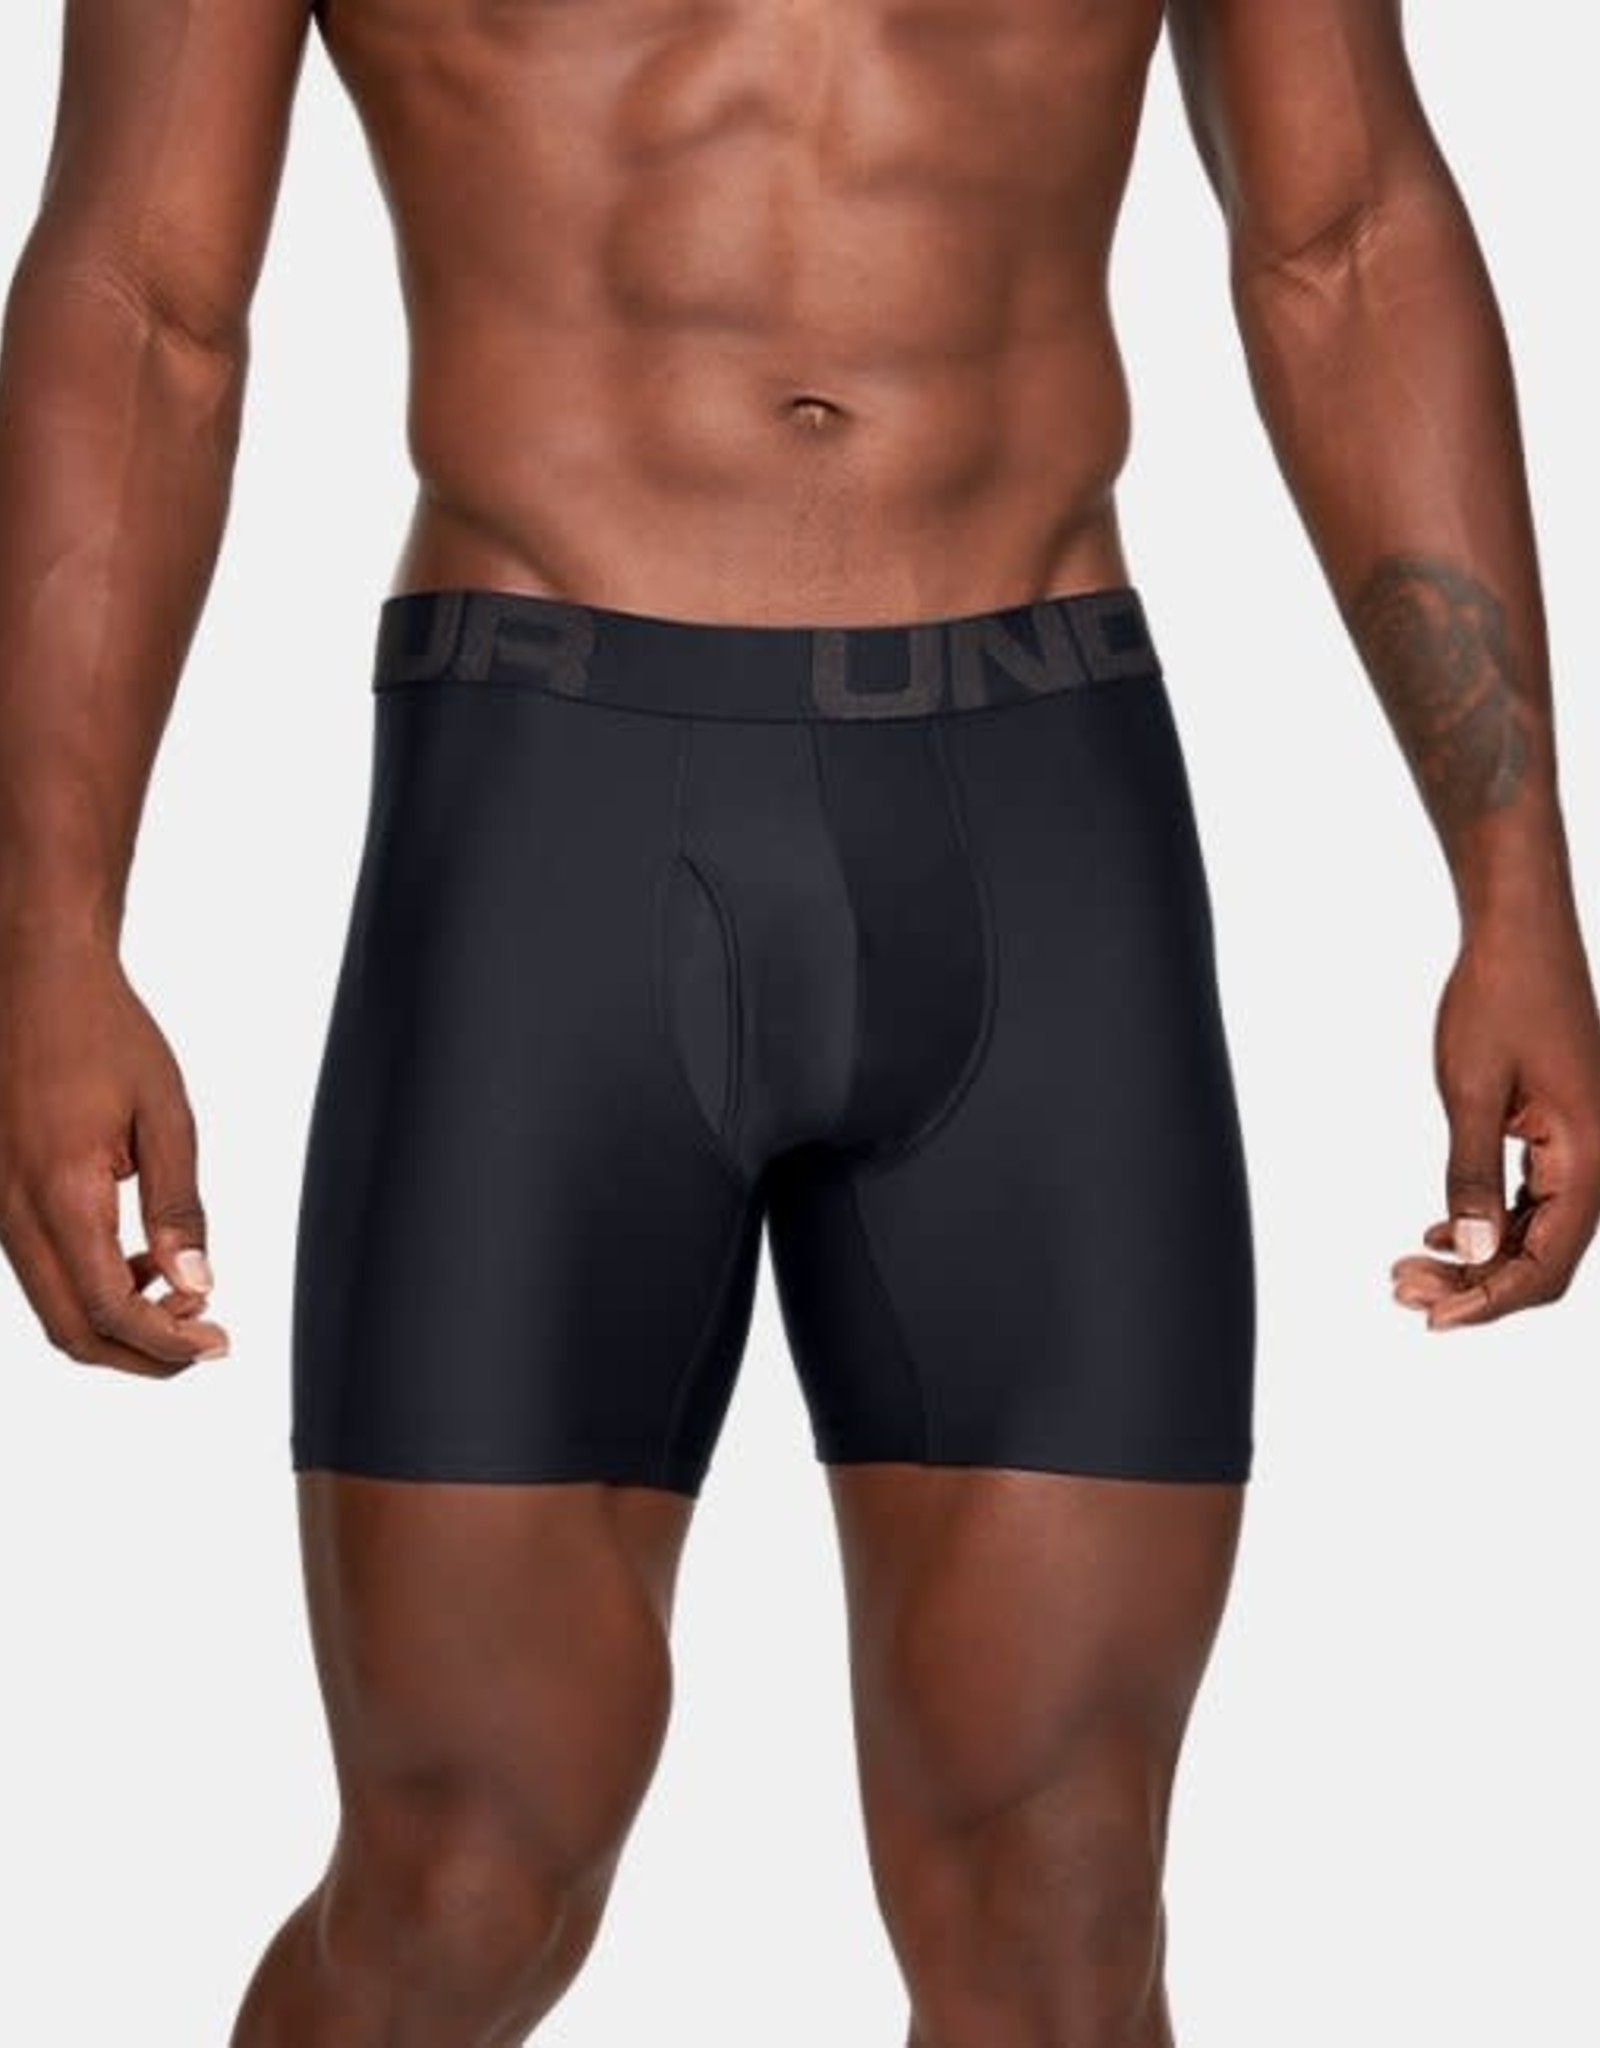 Under Armour UA Tech 6inch Boxers 2 Pack - black